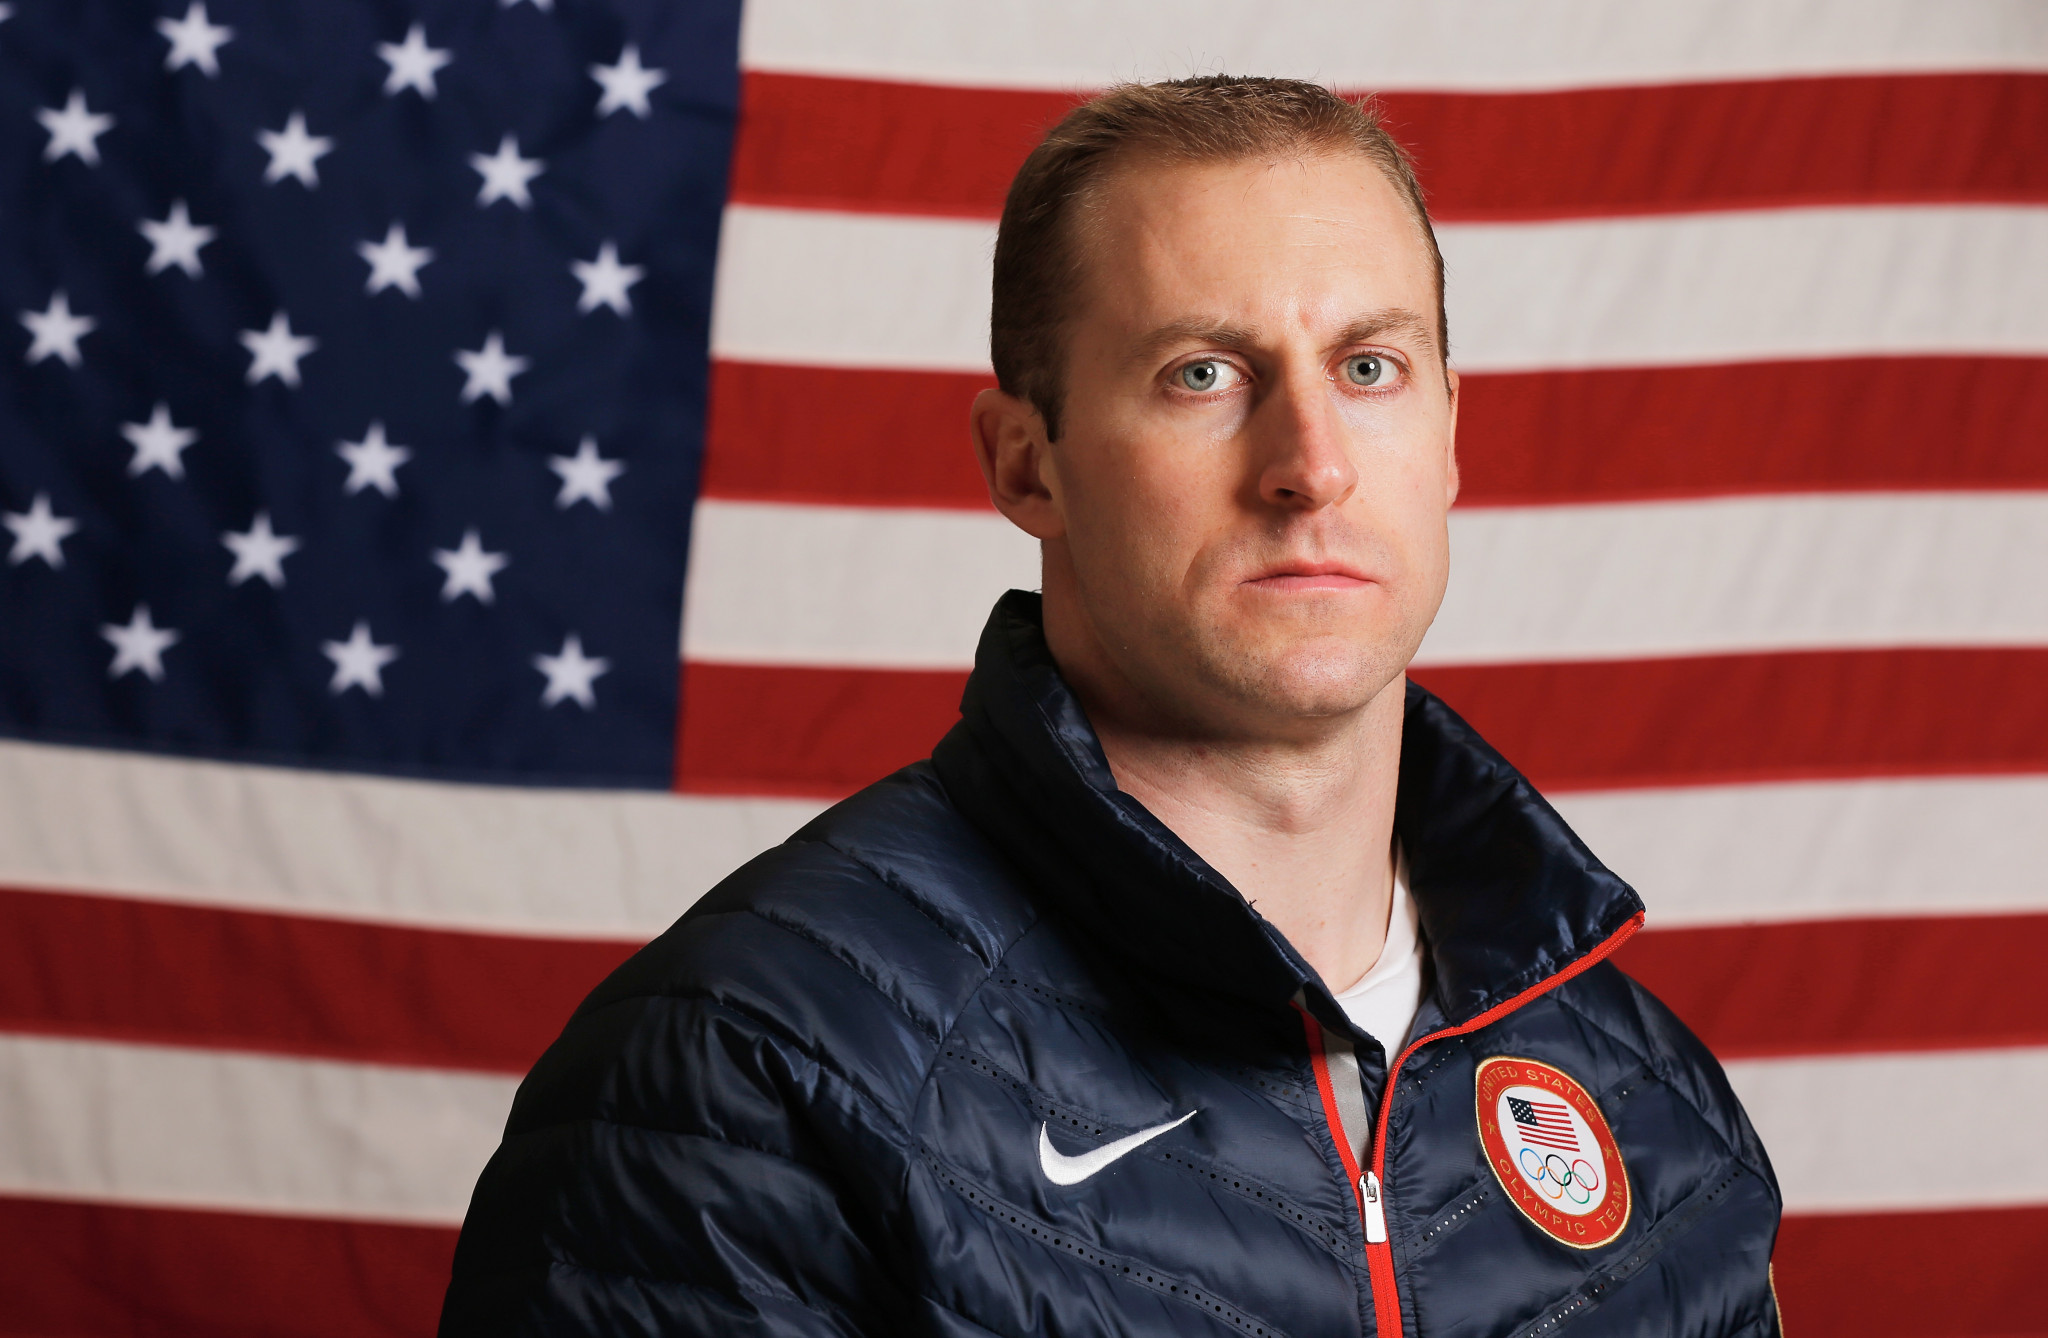 Olympic gold medallist Tomasevicz joins USA Bobsled and Skeleton as director of sports performance